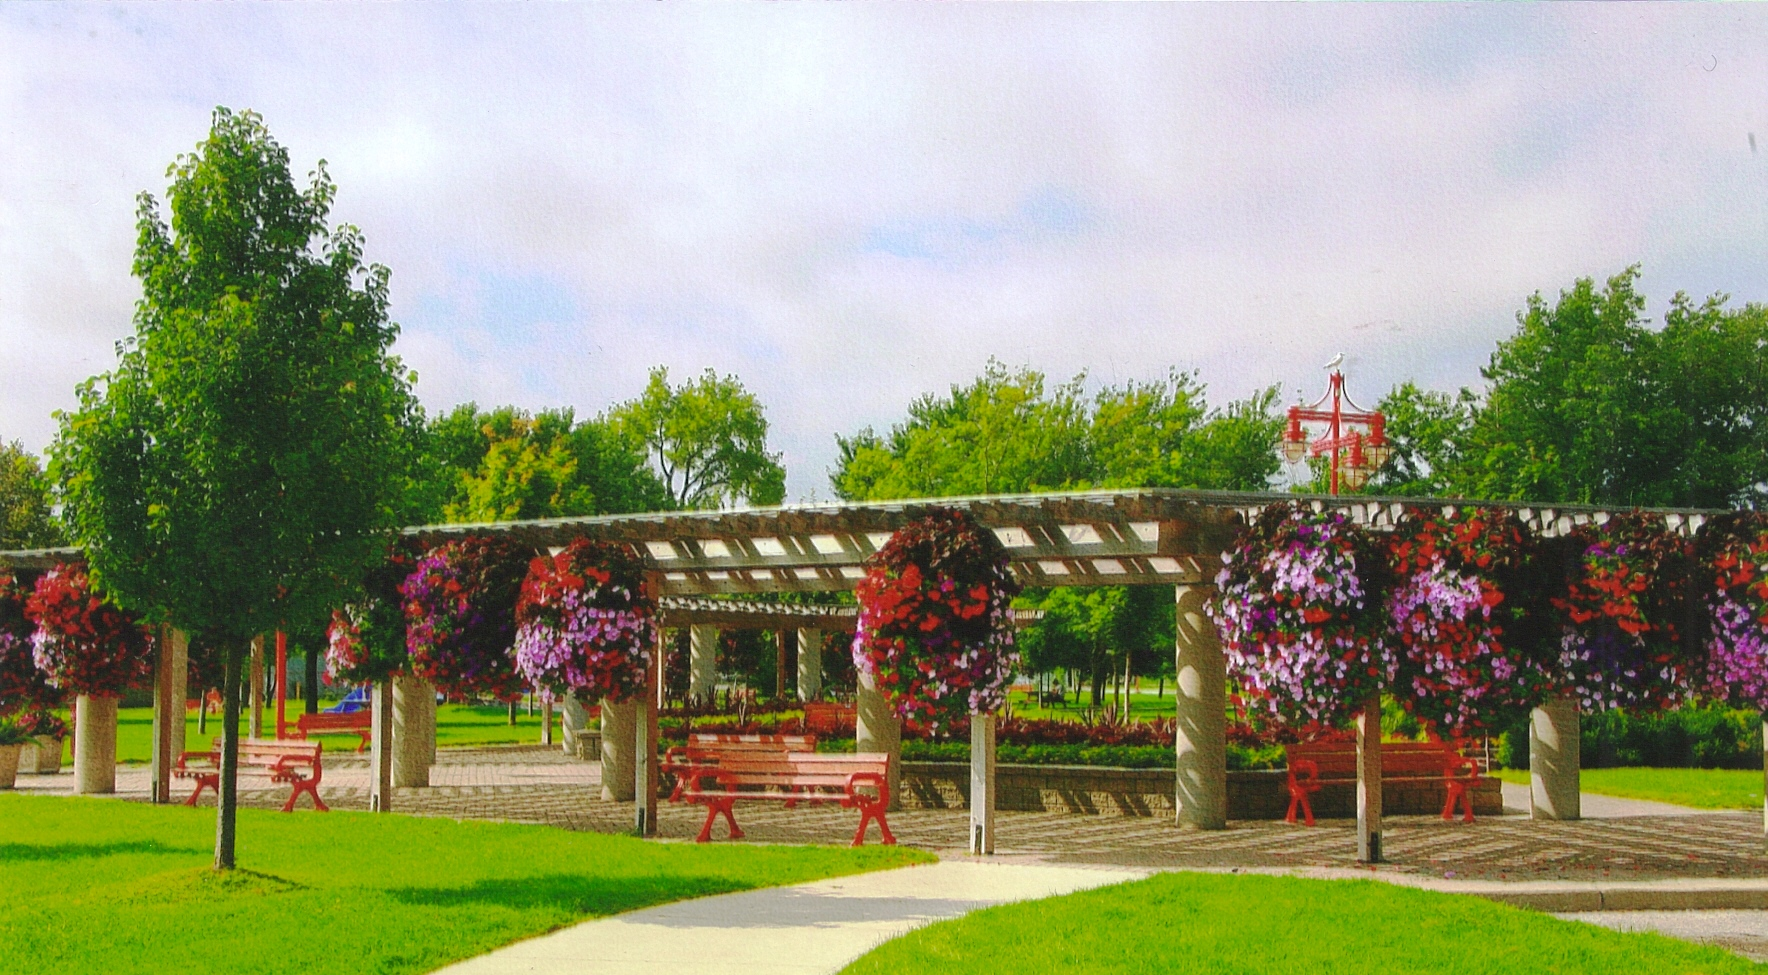 Rick Atkin Pk Arbor with hanging baskets_benches.jpg